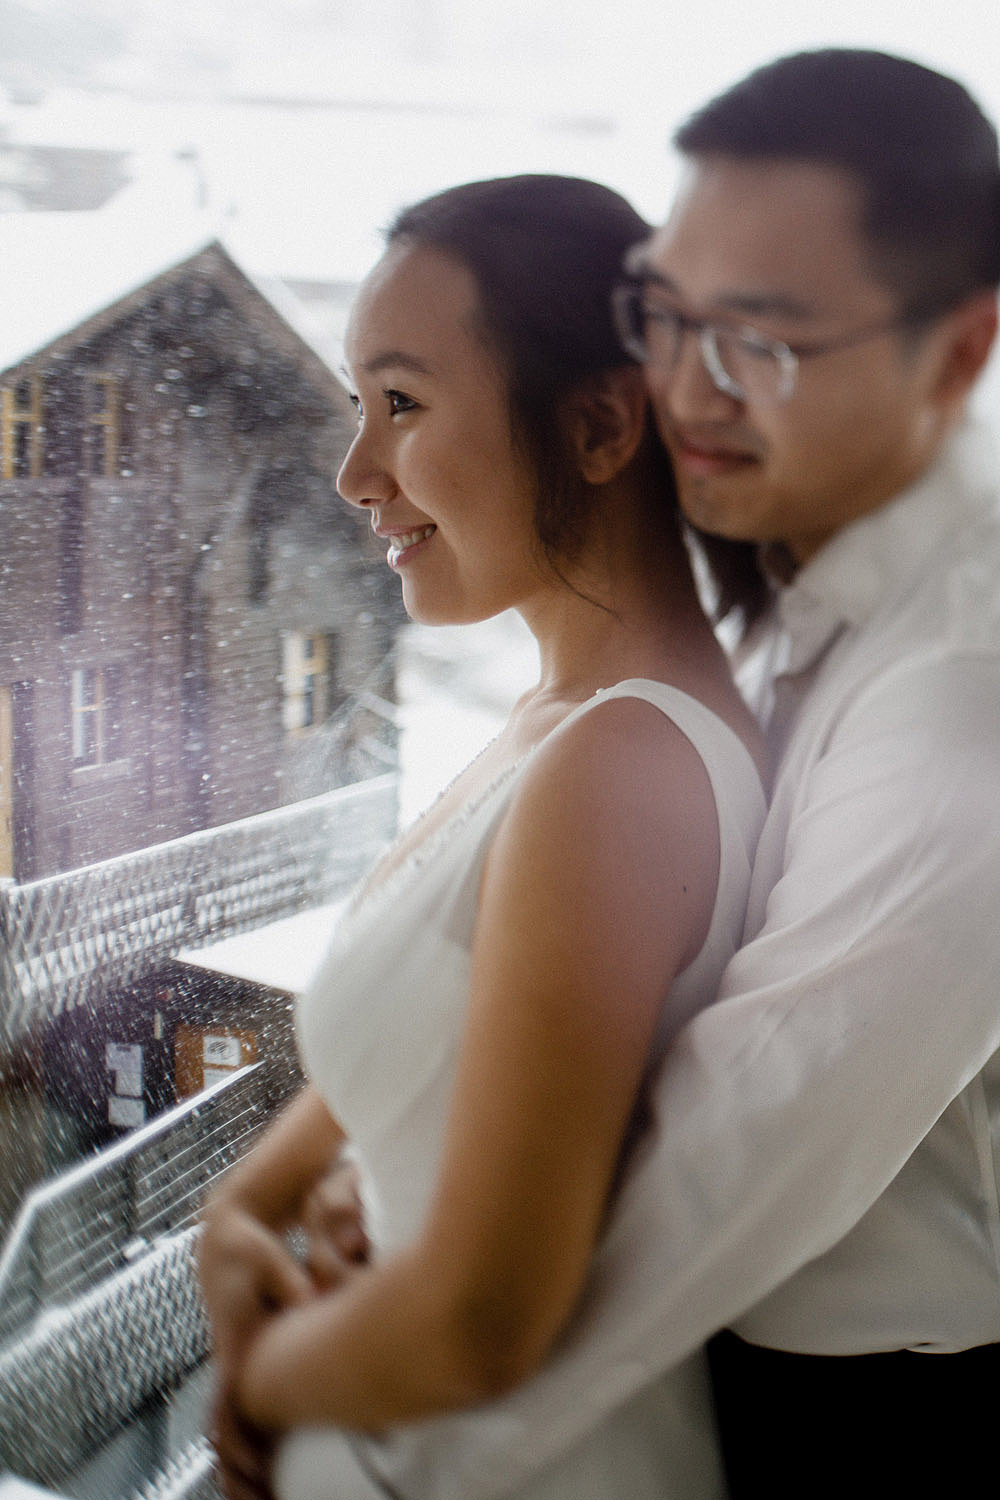 Sessione di Fidanzamento a Zermatt in Svizzera :: Luxury wedding photography - 8